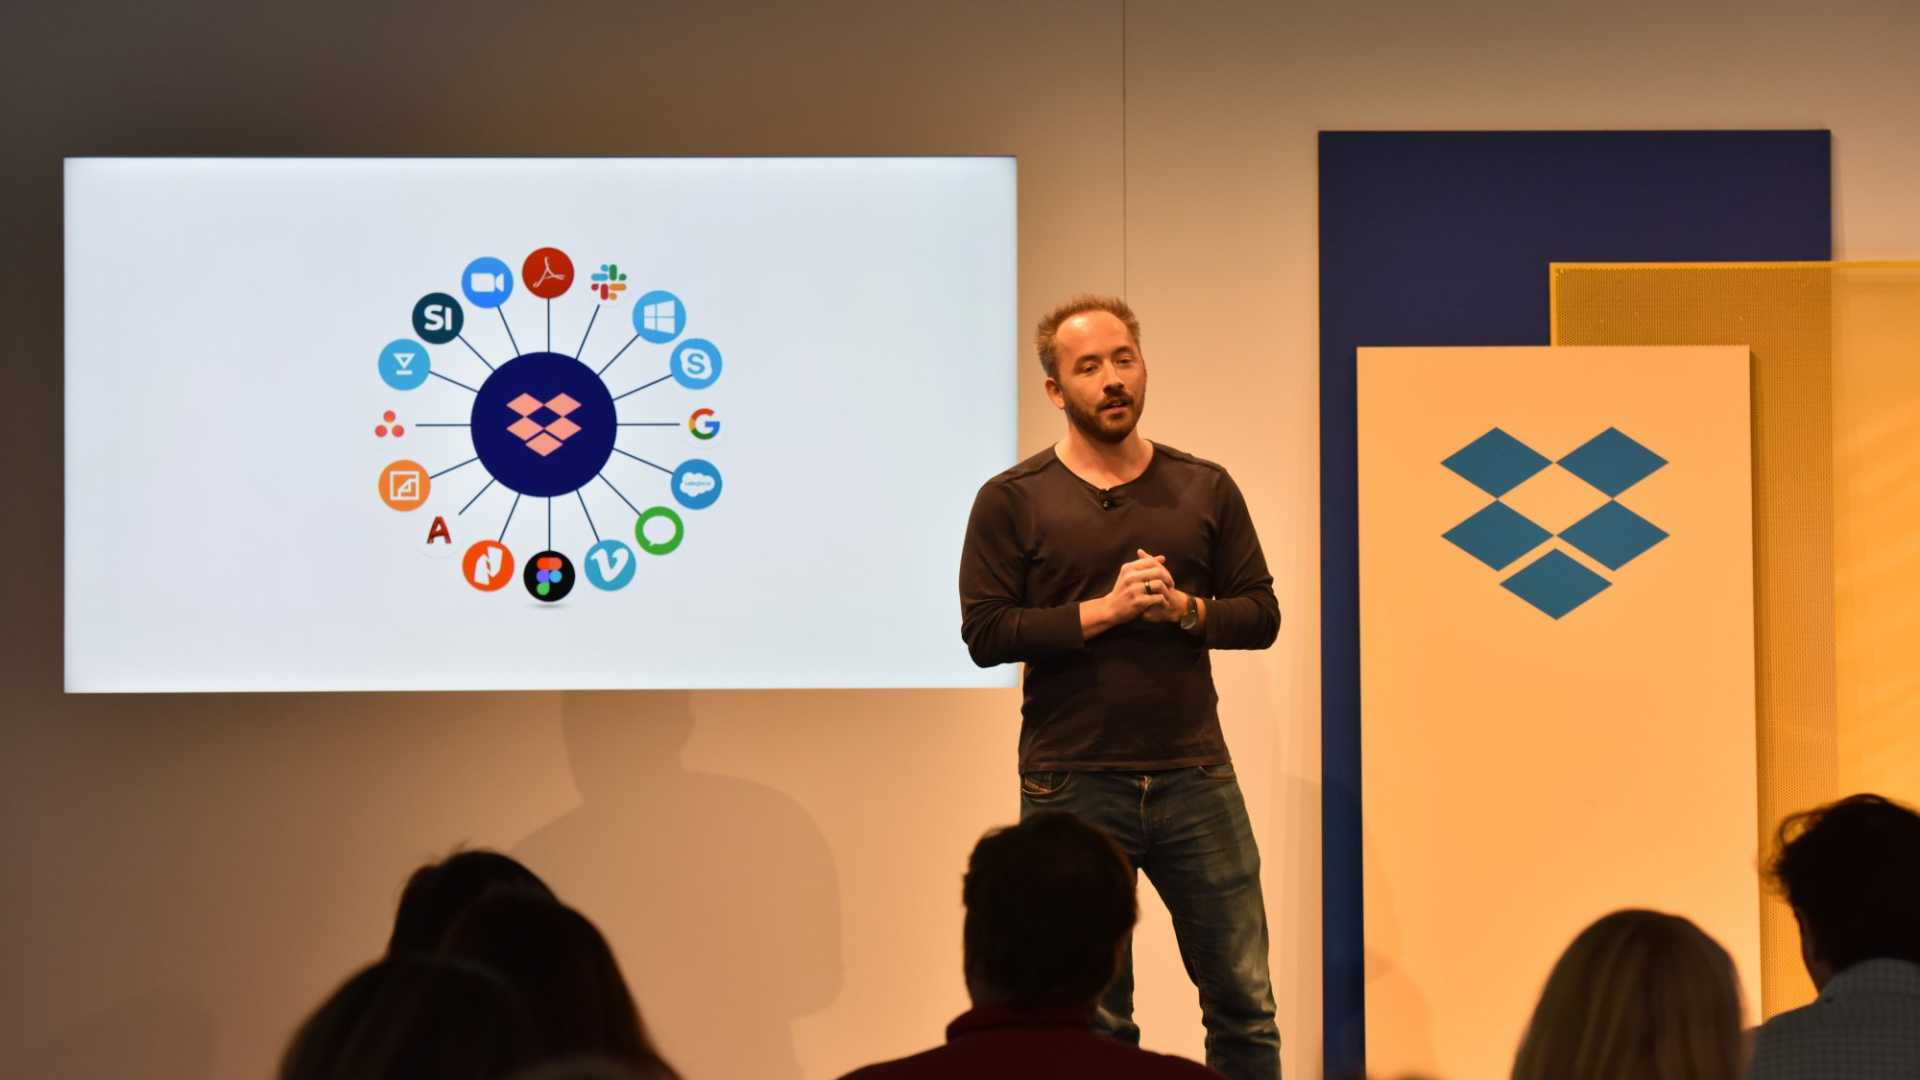 Dropbox Just Announced a Major Redesign That You're Going to Love Until You Realize it Has A Fatal Flaw